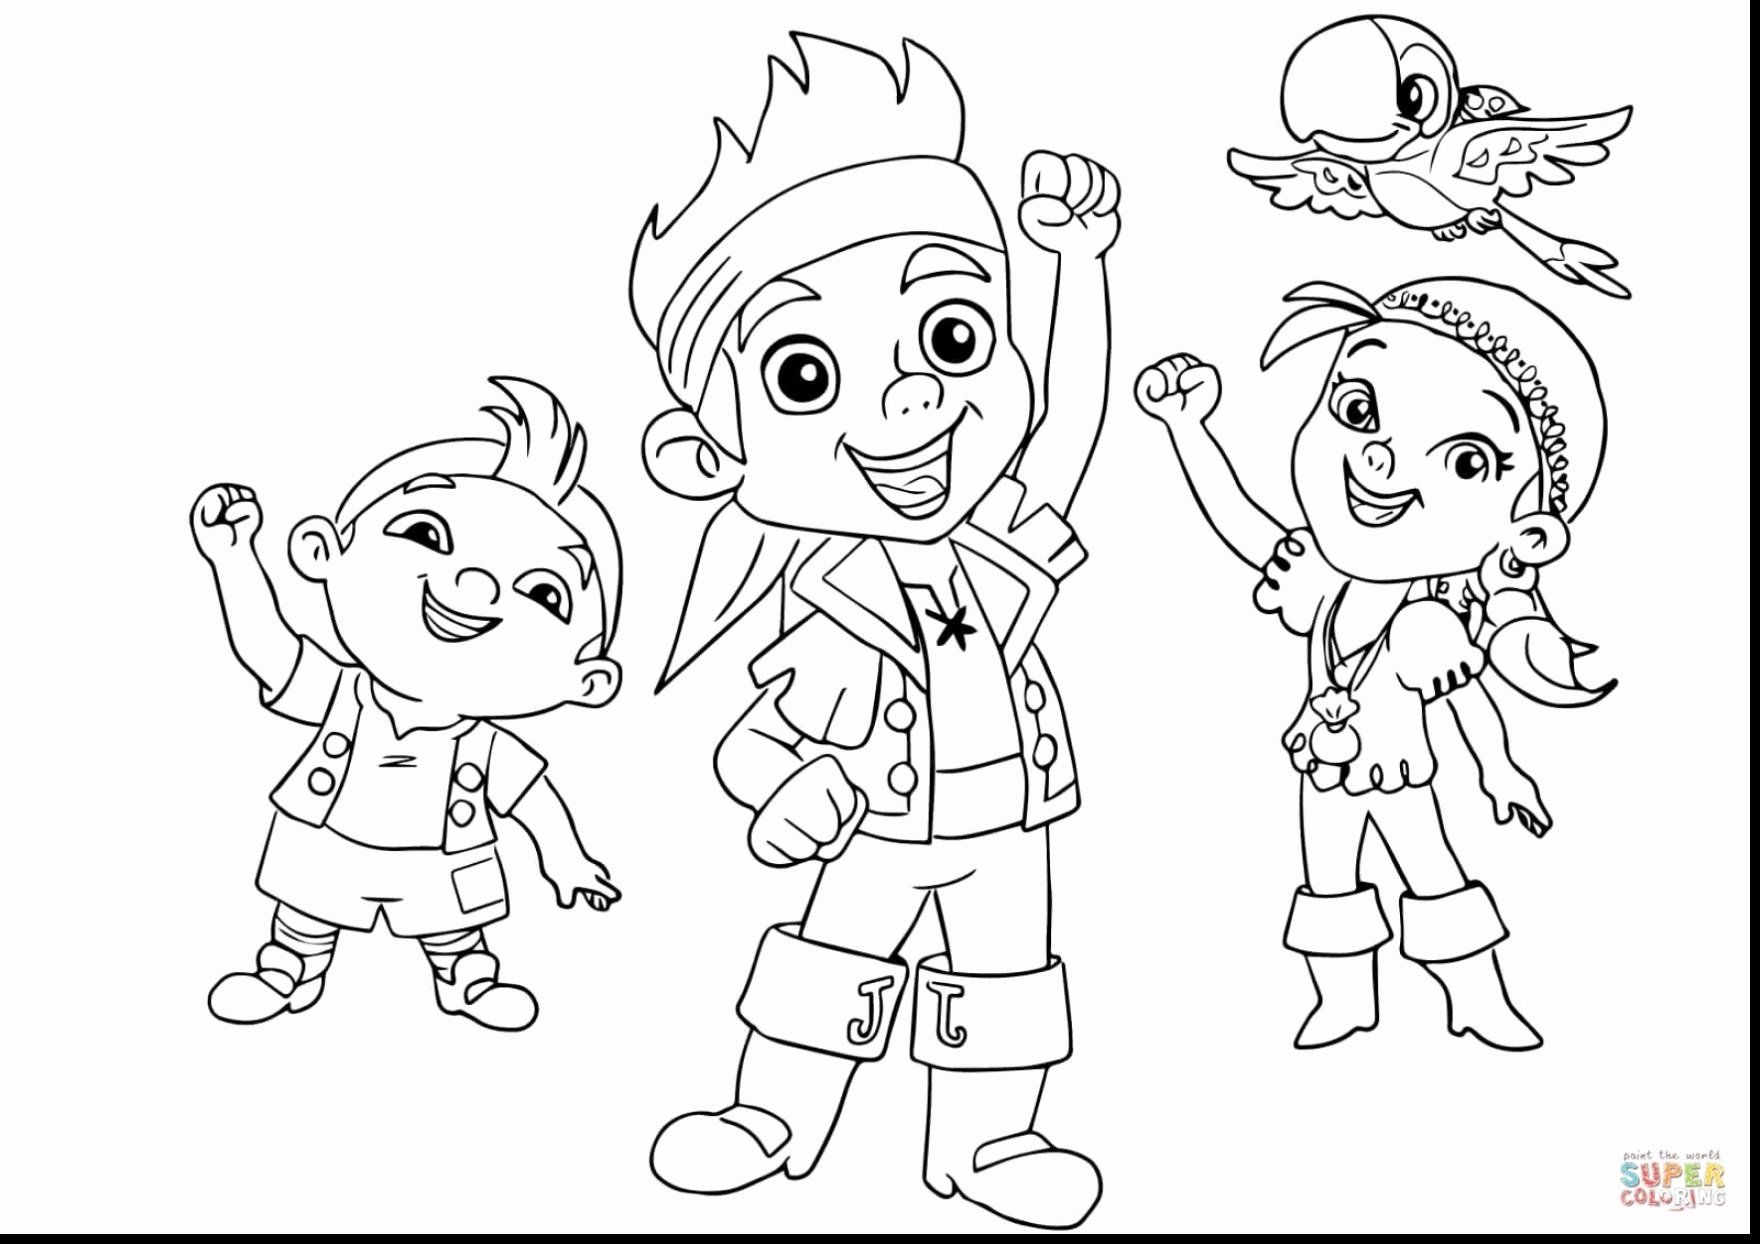 jake the pirate 28 jake and the neverland pirates coloring page in 2020 the pirate jake